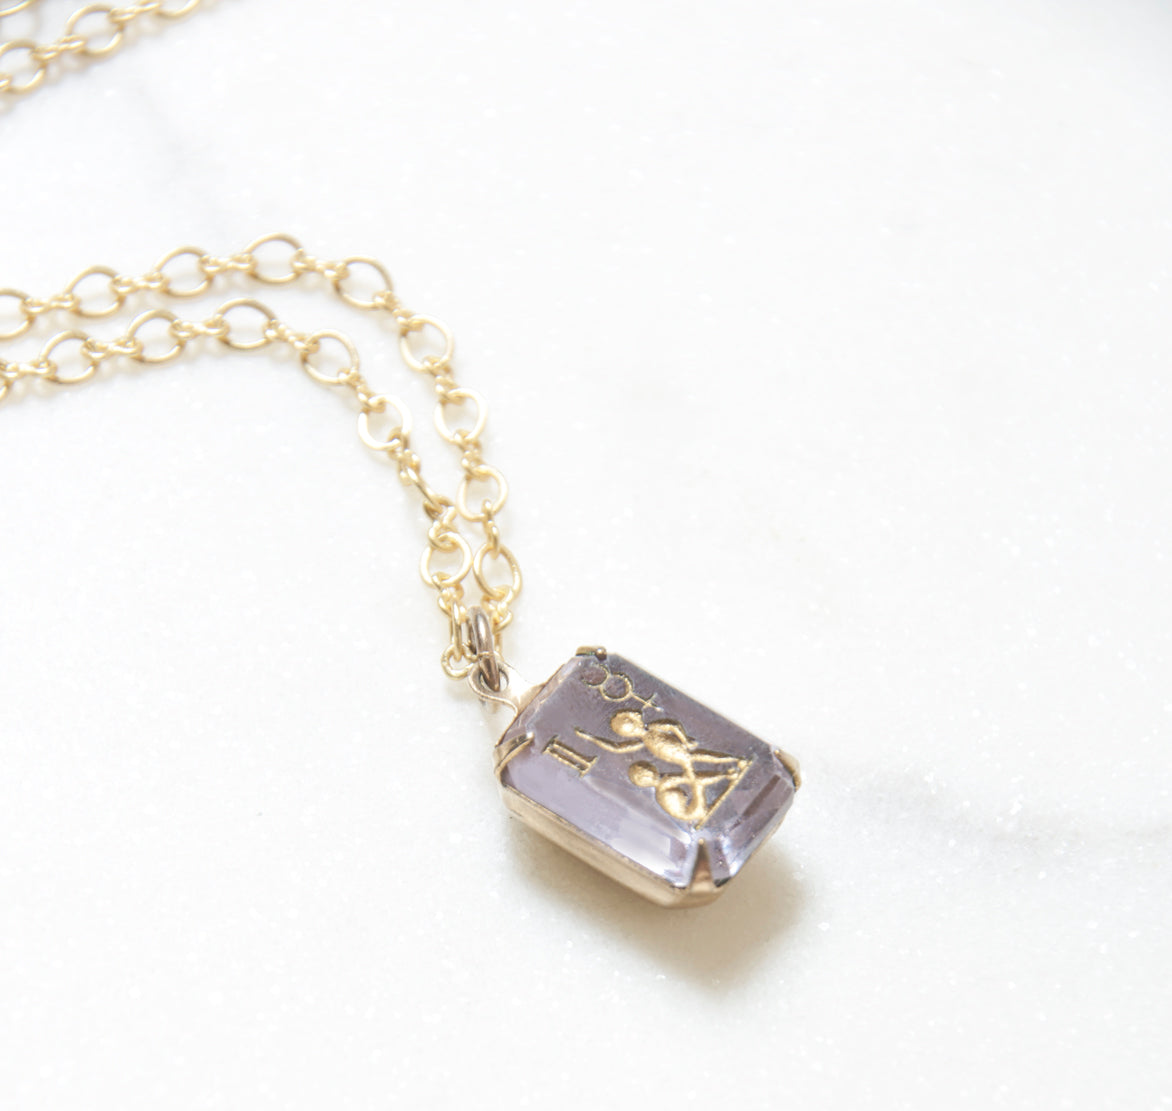 Antique Gemini Pendant Necklace in Amethyst Intaglio Glass